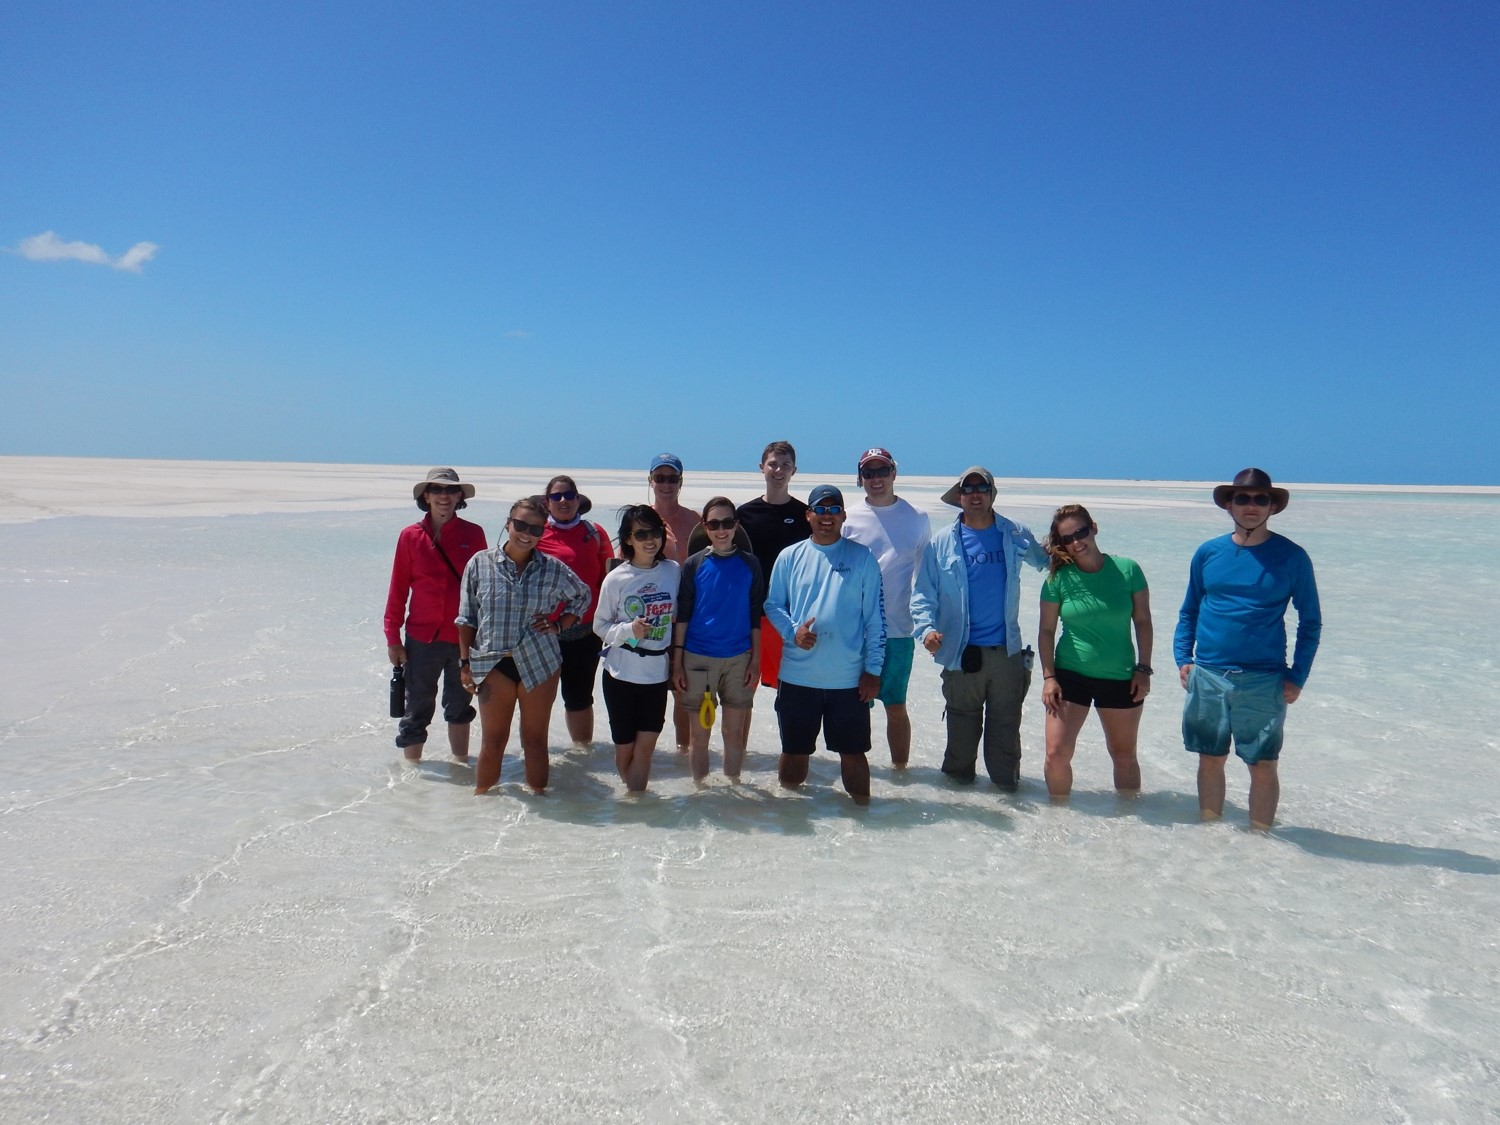 Above: Juan Carlos Laya and his students at Joulter's Cay ooid carbonate shoal in the Bahamas as part of the modern carbonate field trip during spring 2016. (Photo by Juan Carlos Laya)